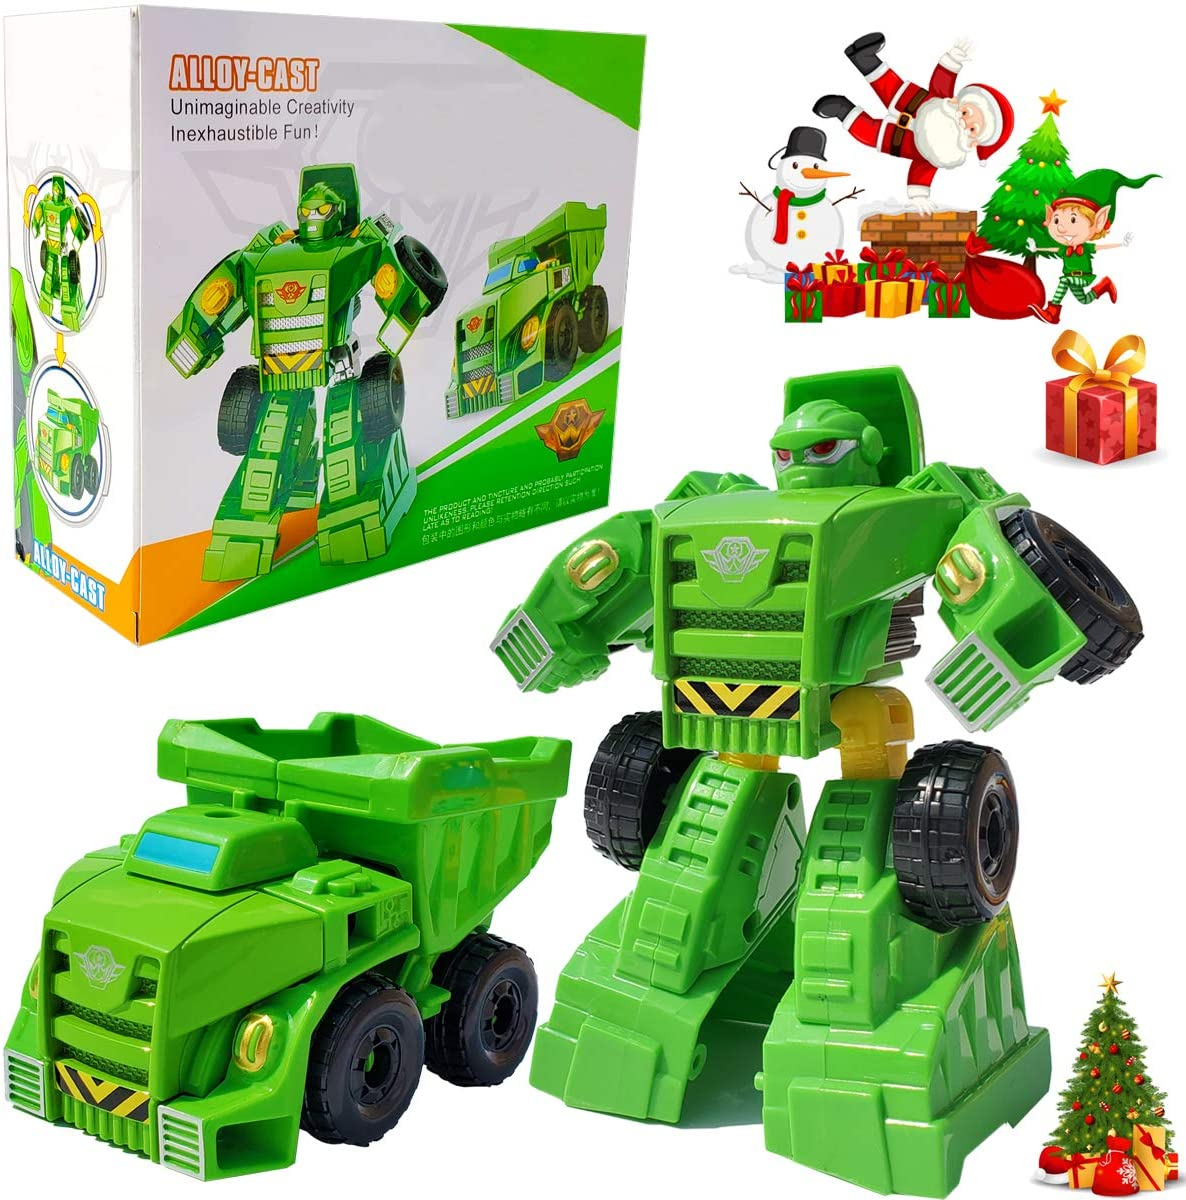 Tonmp One Step Deformation Toy,Heroes Rescue Bots Medix The Doc-Bot Car Robot Model for Boys and Children's Toys (Giant Stone Warrior)